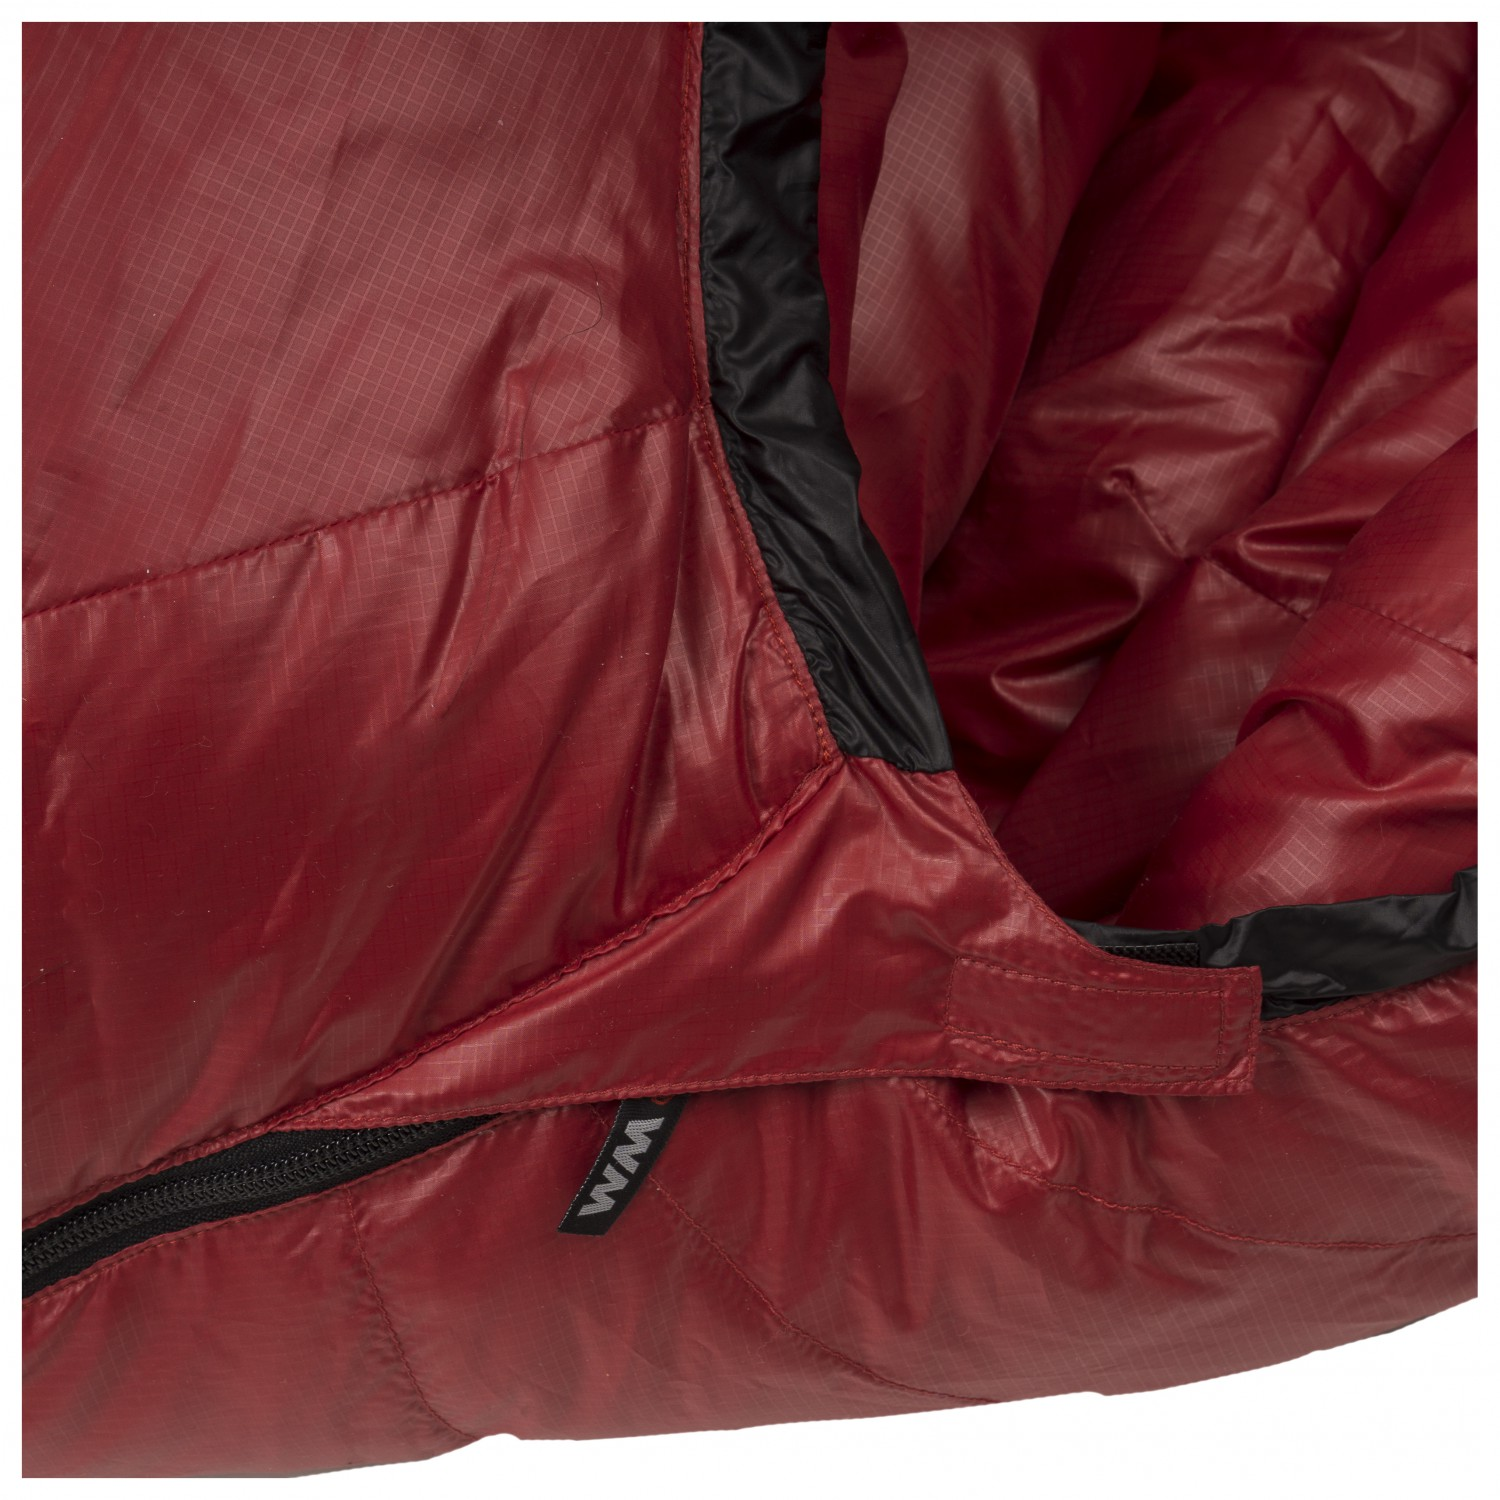 competitive price 5d289 035c9 Western Mountaineering - Apache MF - Down sleeping bag - Red / Black | 165  cm - Zip: Left